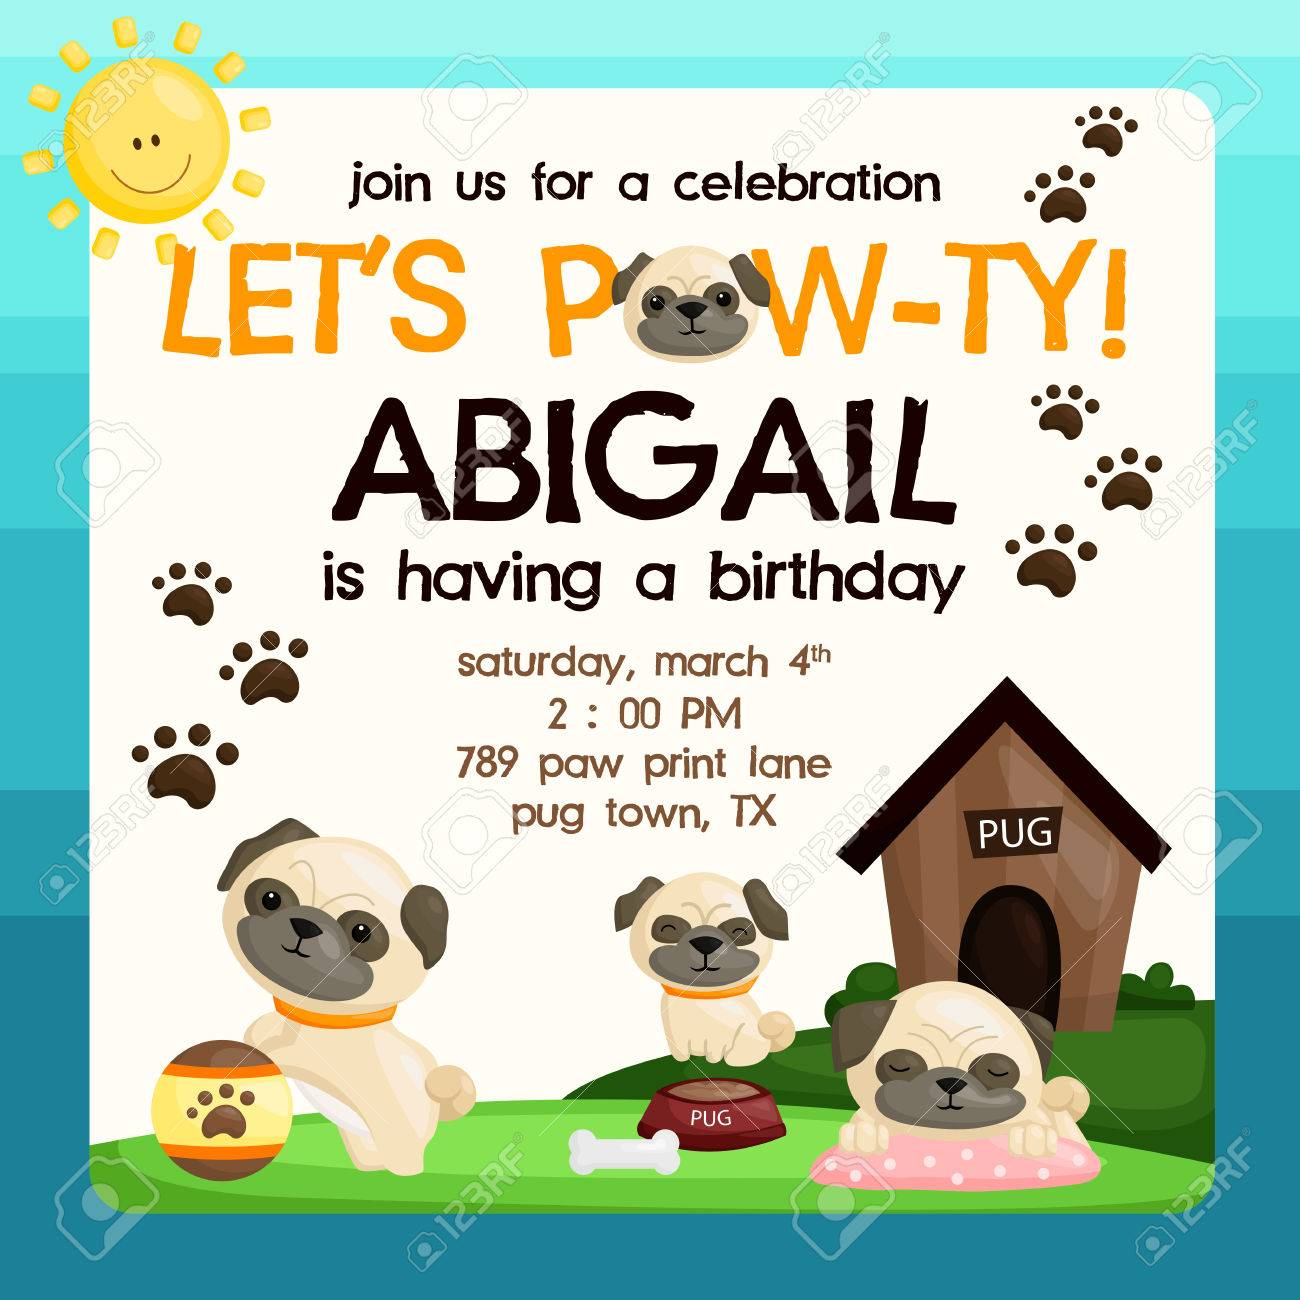 Pug Birthday Invitation Royalty Free Cliparts Vectors And Stock